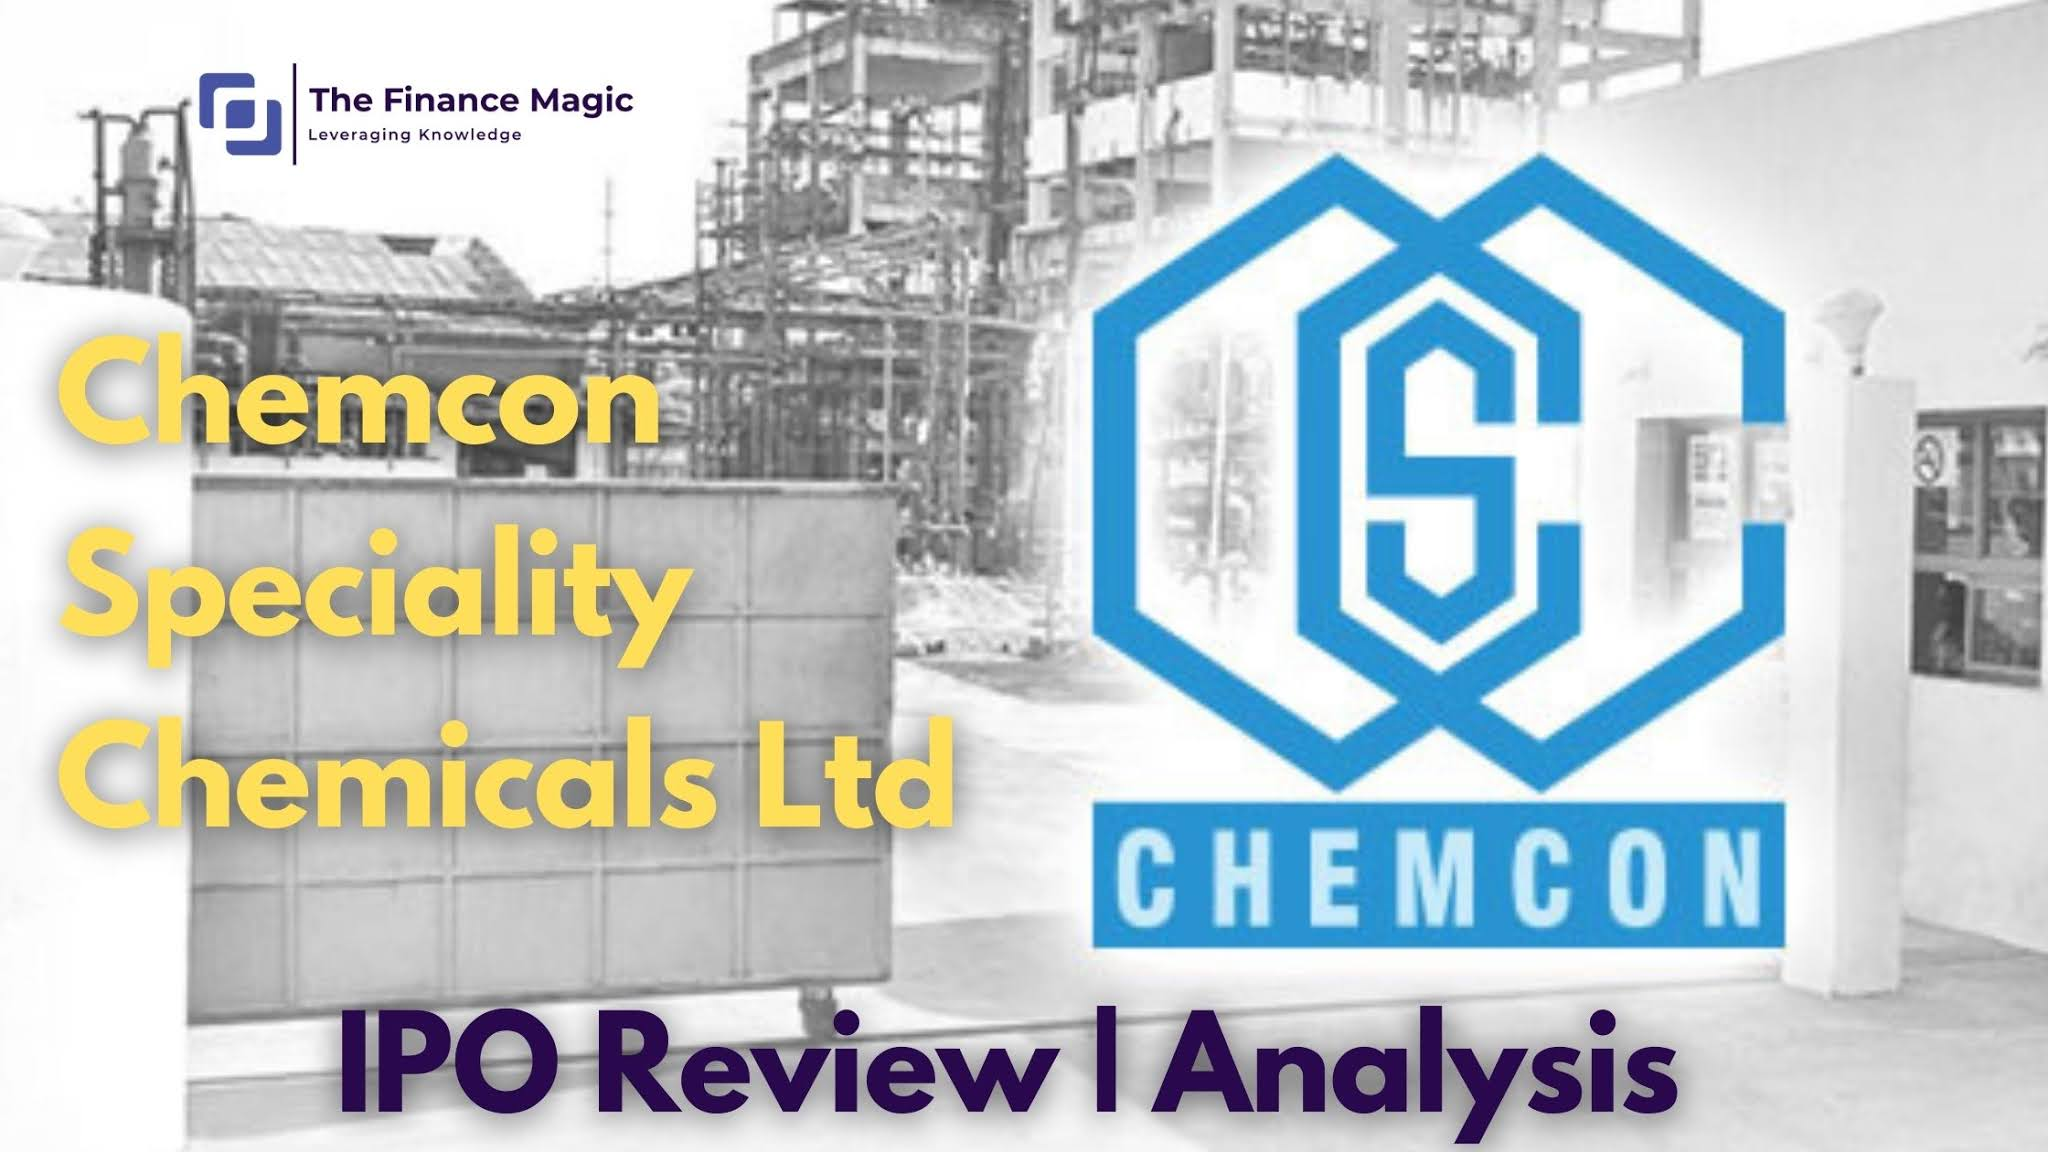 Chemcon Speciality Chemicals Ltd